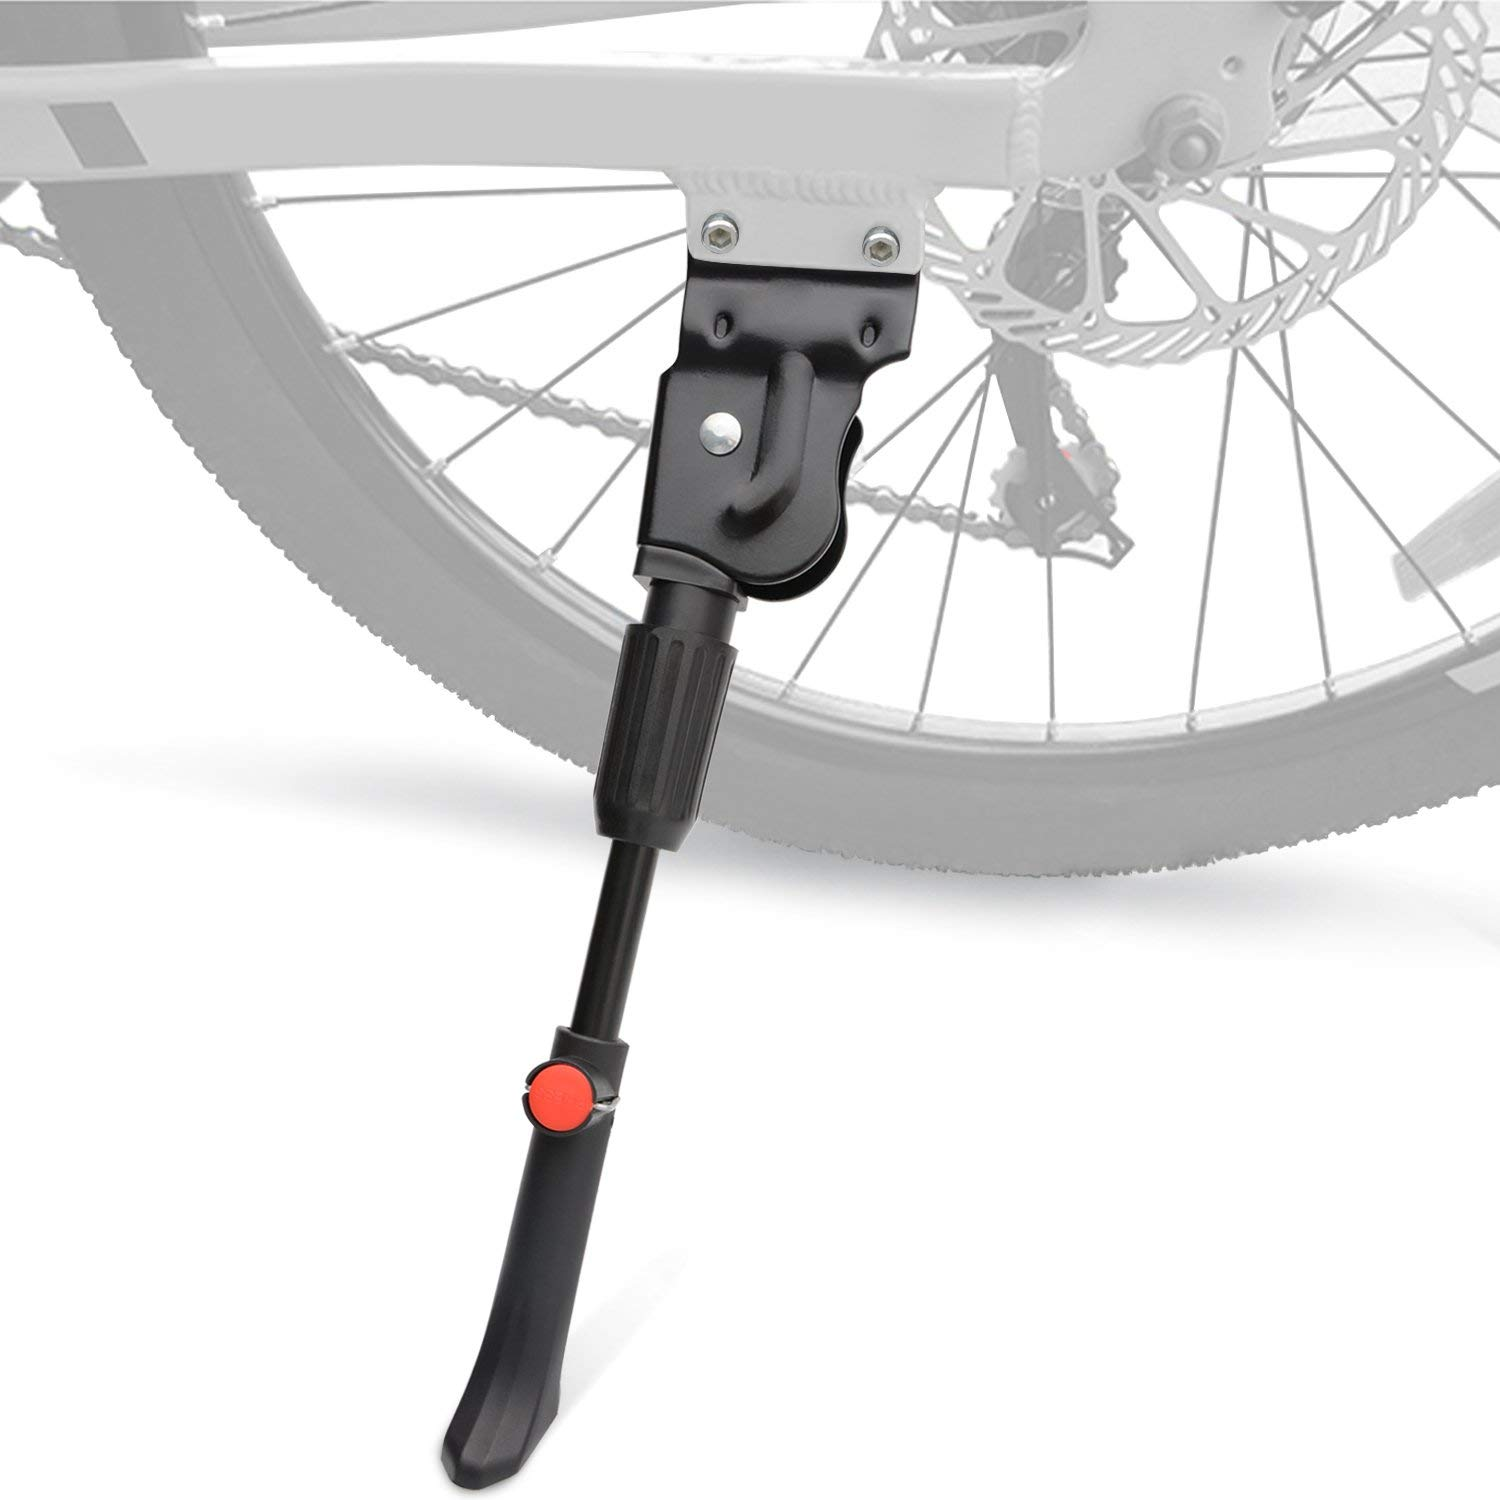 Cycling Sporting Goods BMX Junior Adjustable Alloy Kickstand in SILVER